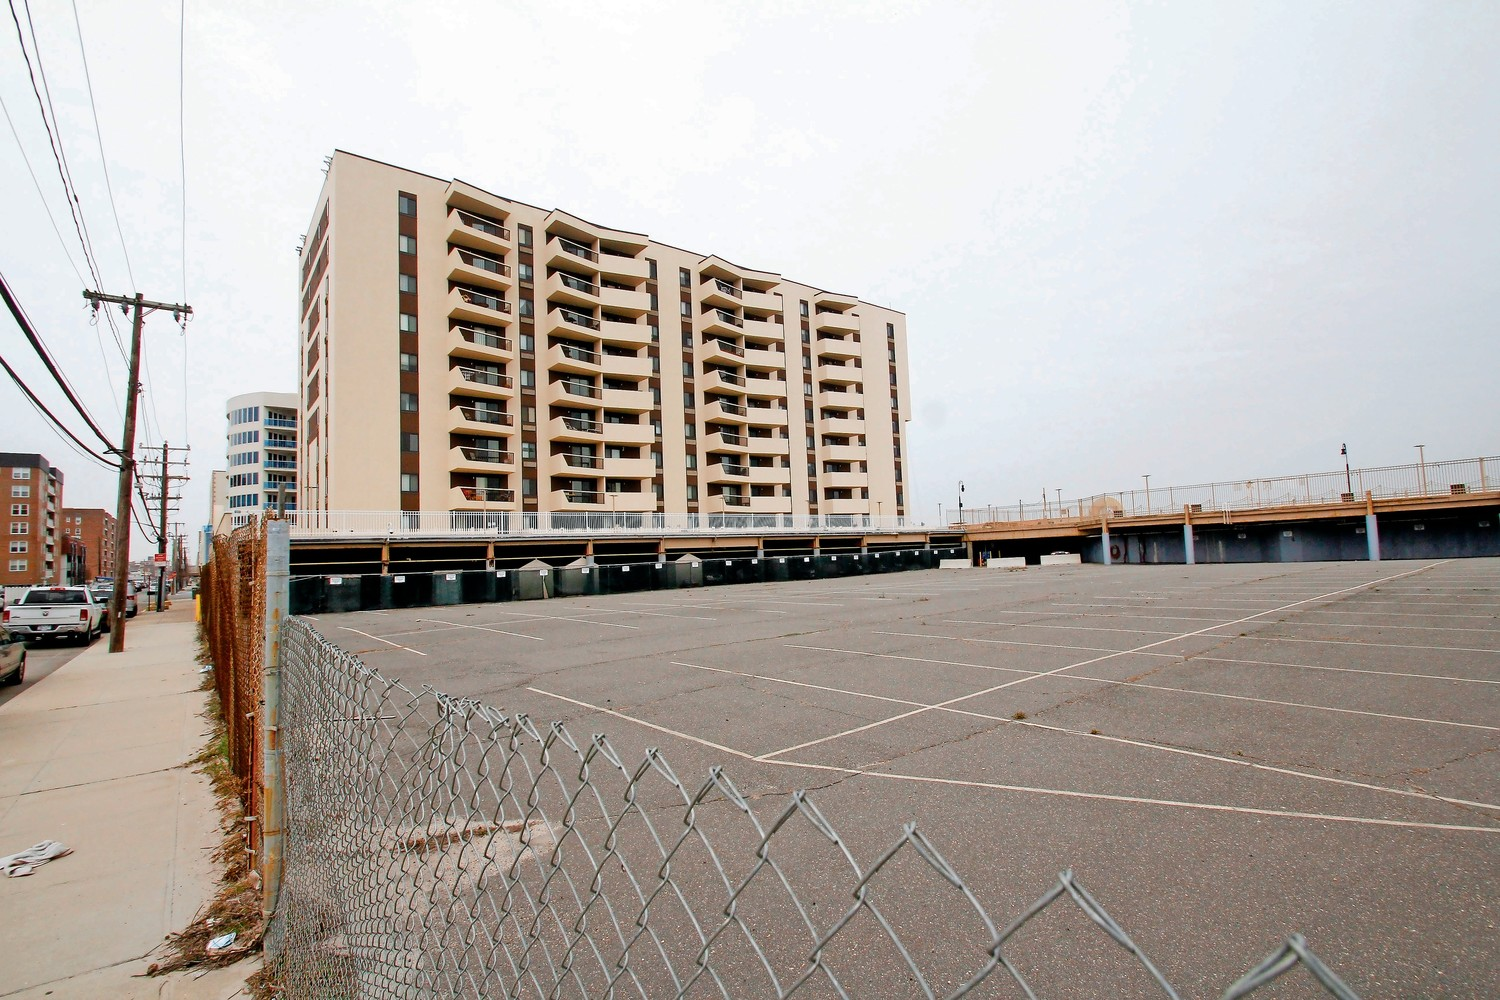 A developer alleges that the city's zoning board bowed to pressure from residents of Sea Pointe Towers, above, when it revoked permits to build adjacent condos.